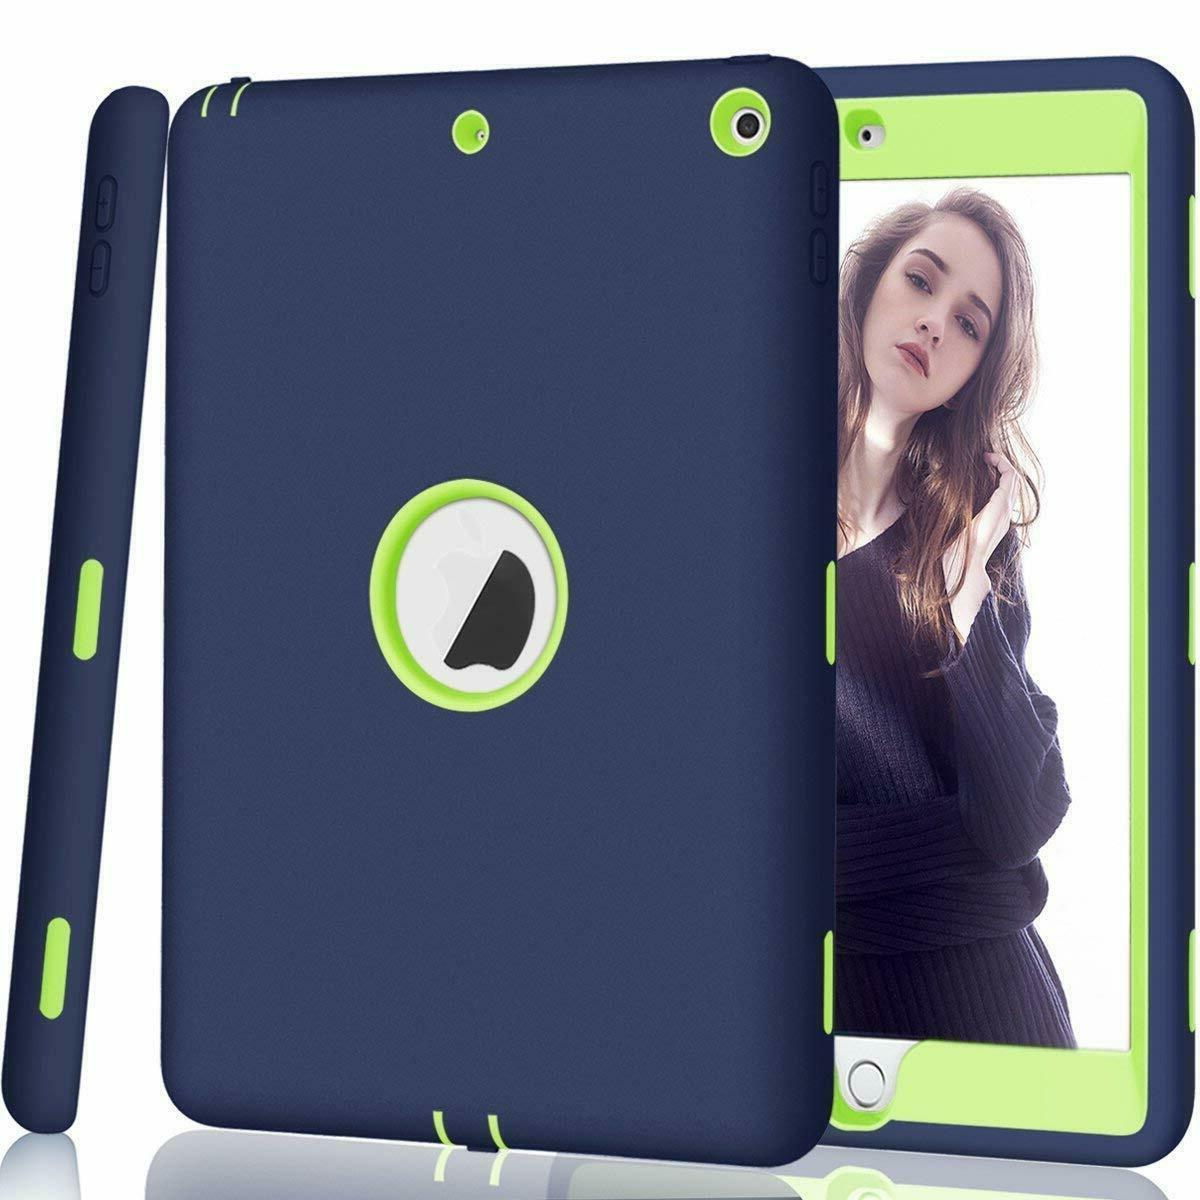 Otterbox Case Protector 5/6th Generation iPad 9.7 Shield wit